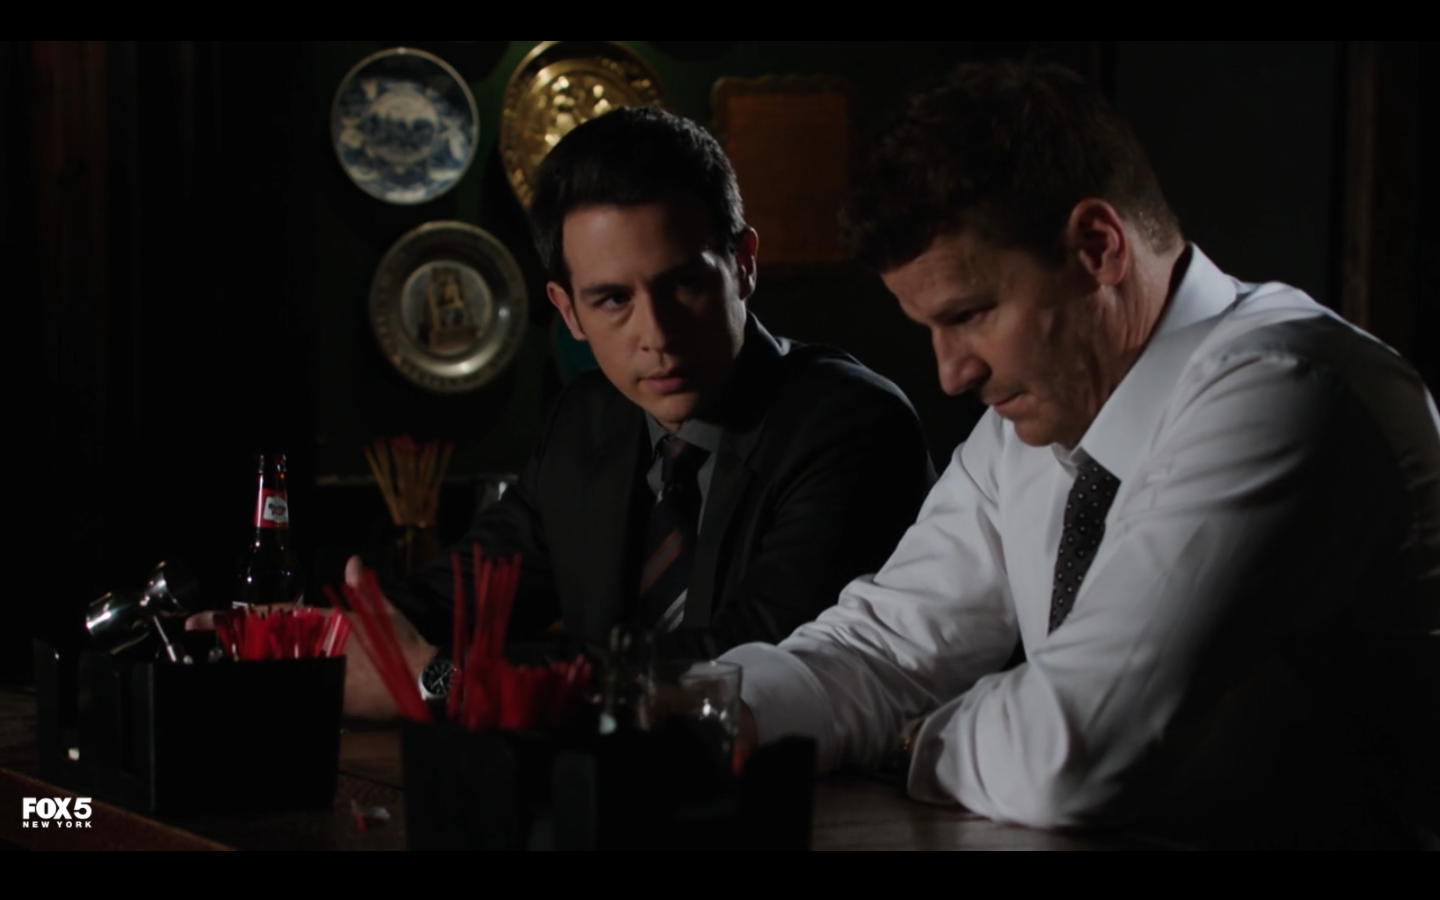 Bones - The Radioactive Panthers in the Party - Review